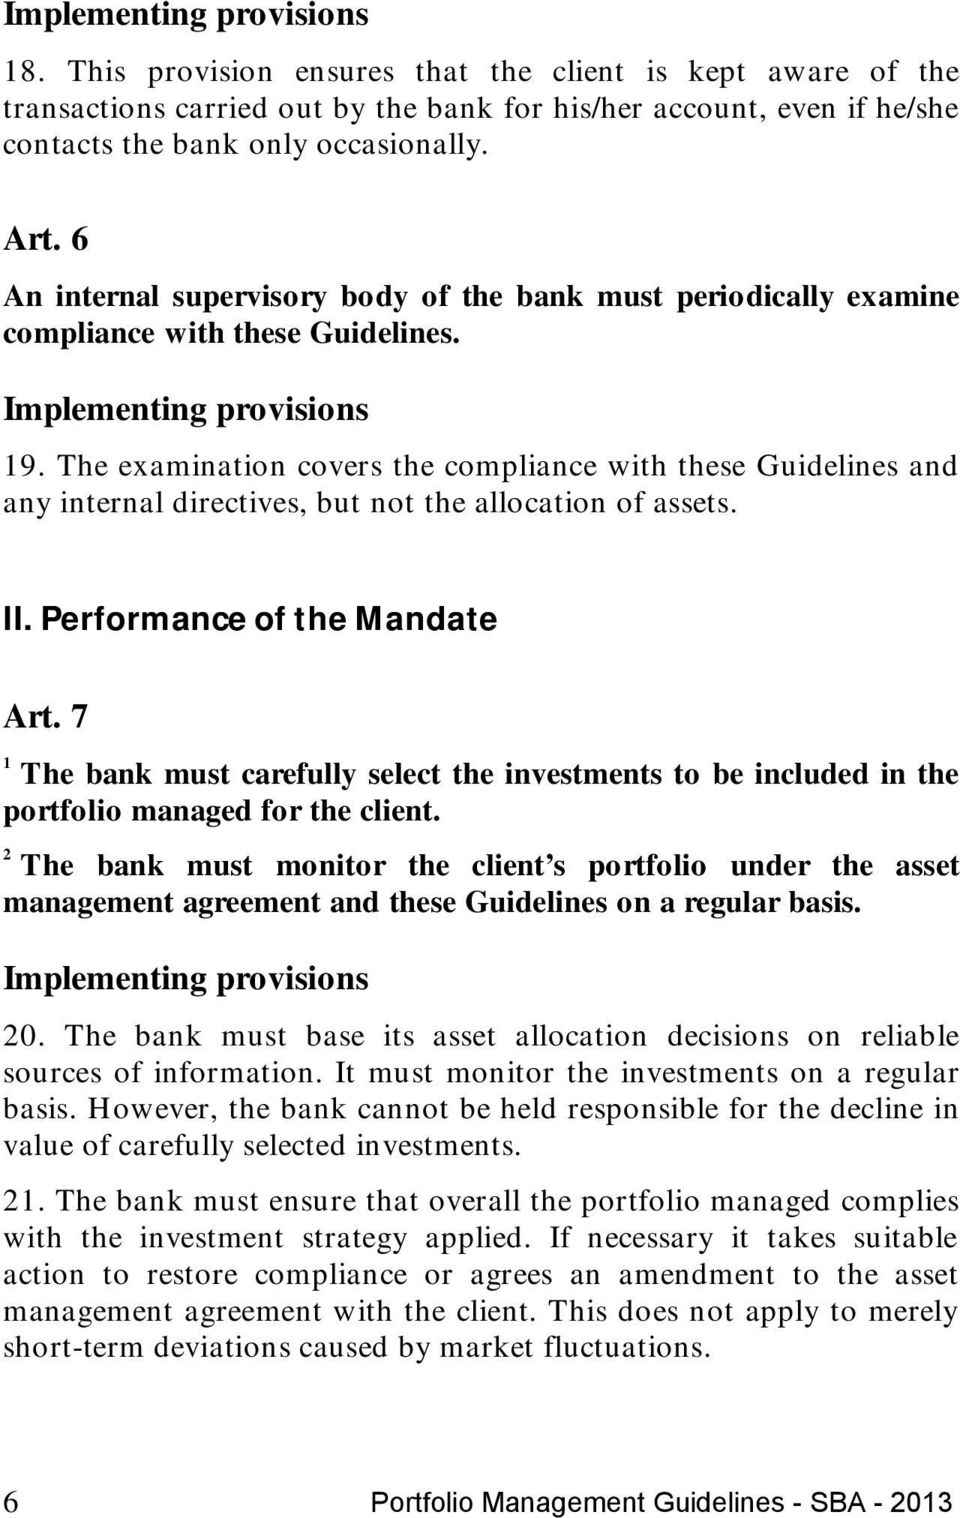 The examination covers the compliance with these Guidelines and any internal directives, but not the allocation of assets. II. Performance of the Mandate Art.